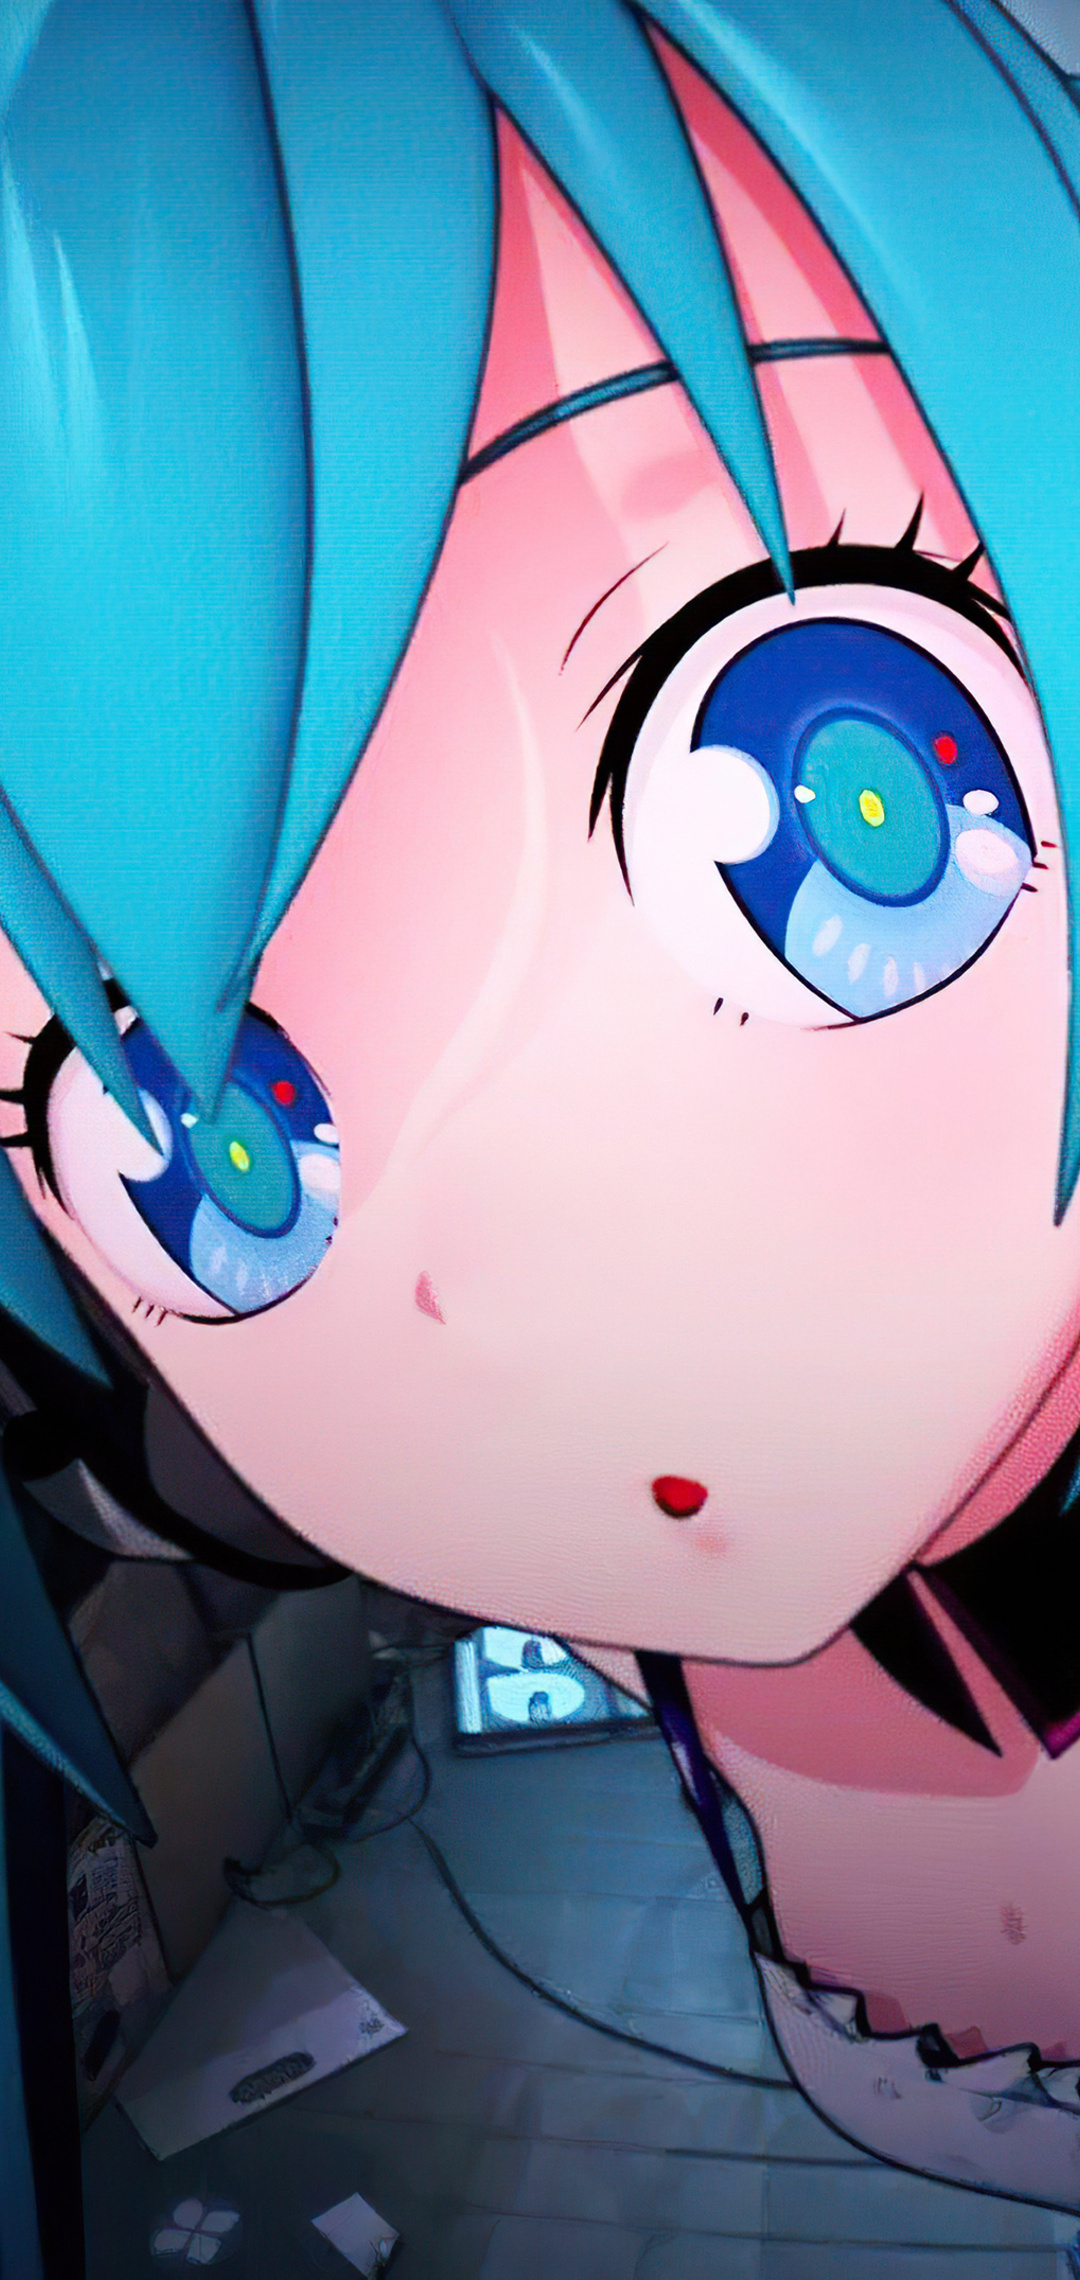 hatsune-miku-closeup-big-eyes-4k-k5.jpg